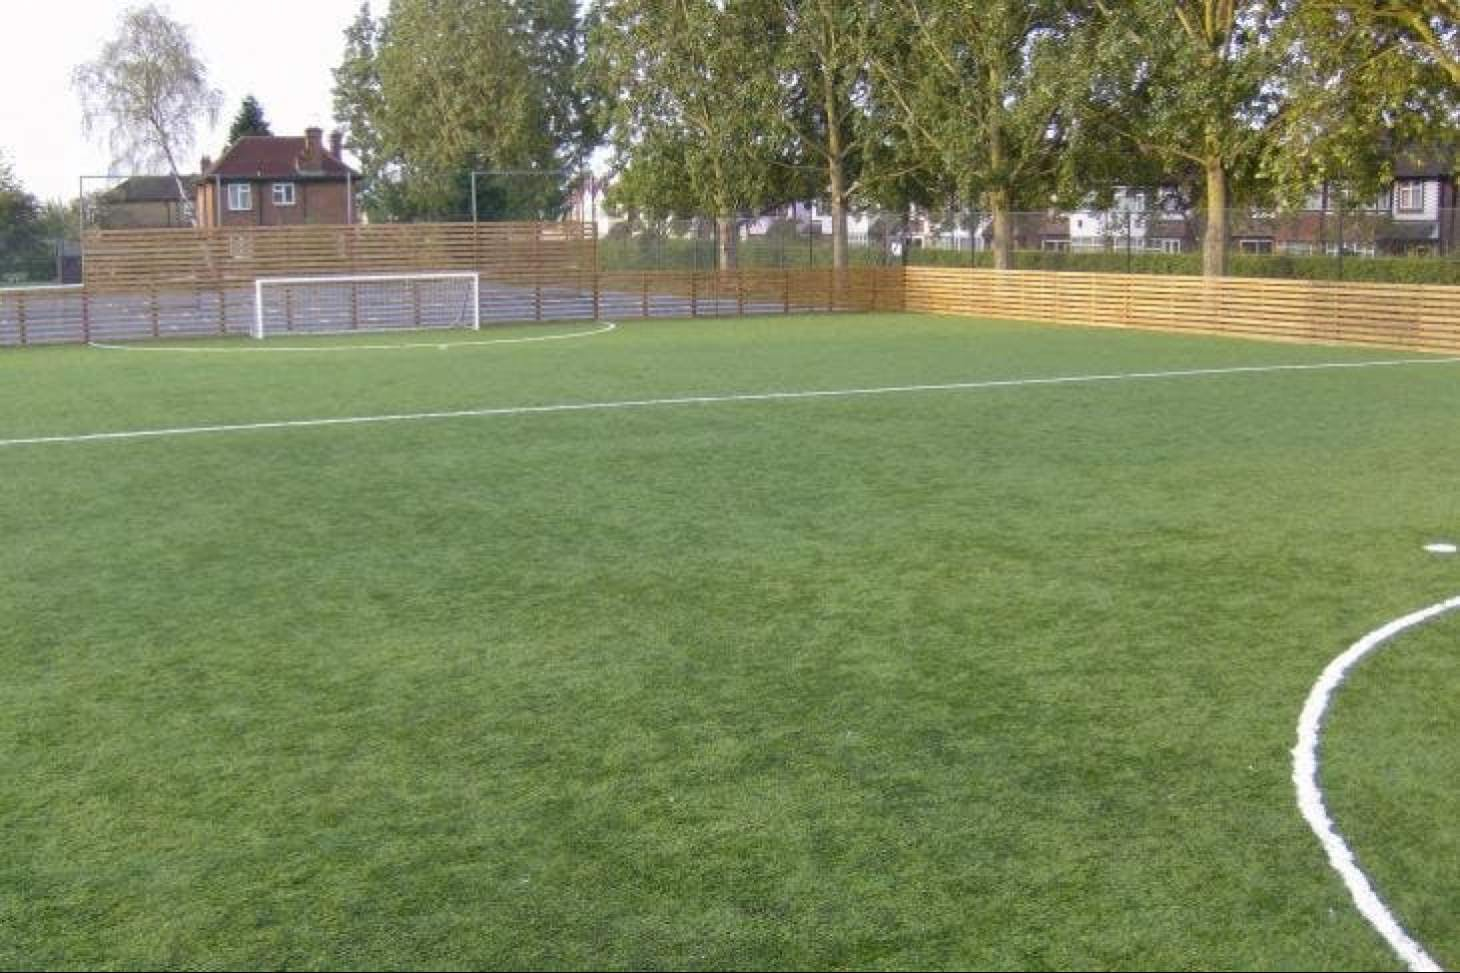 Centenary Sixes 6 a side | 3G Astroturf football pitch